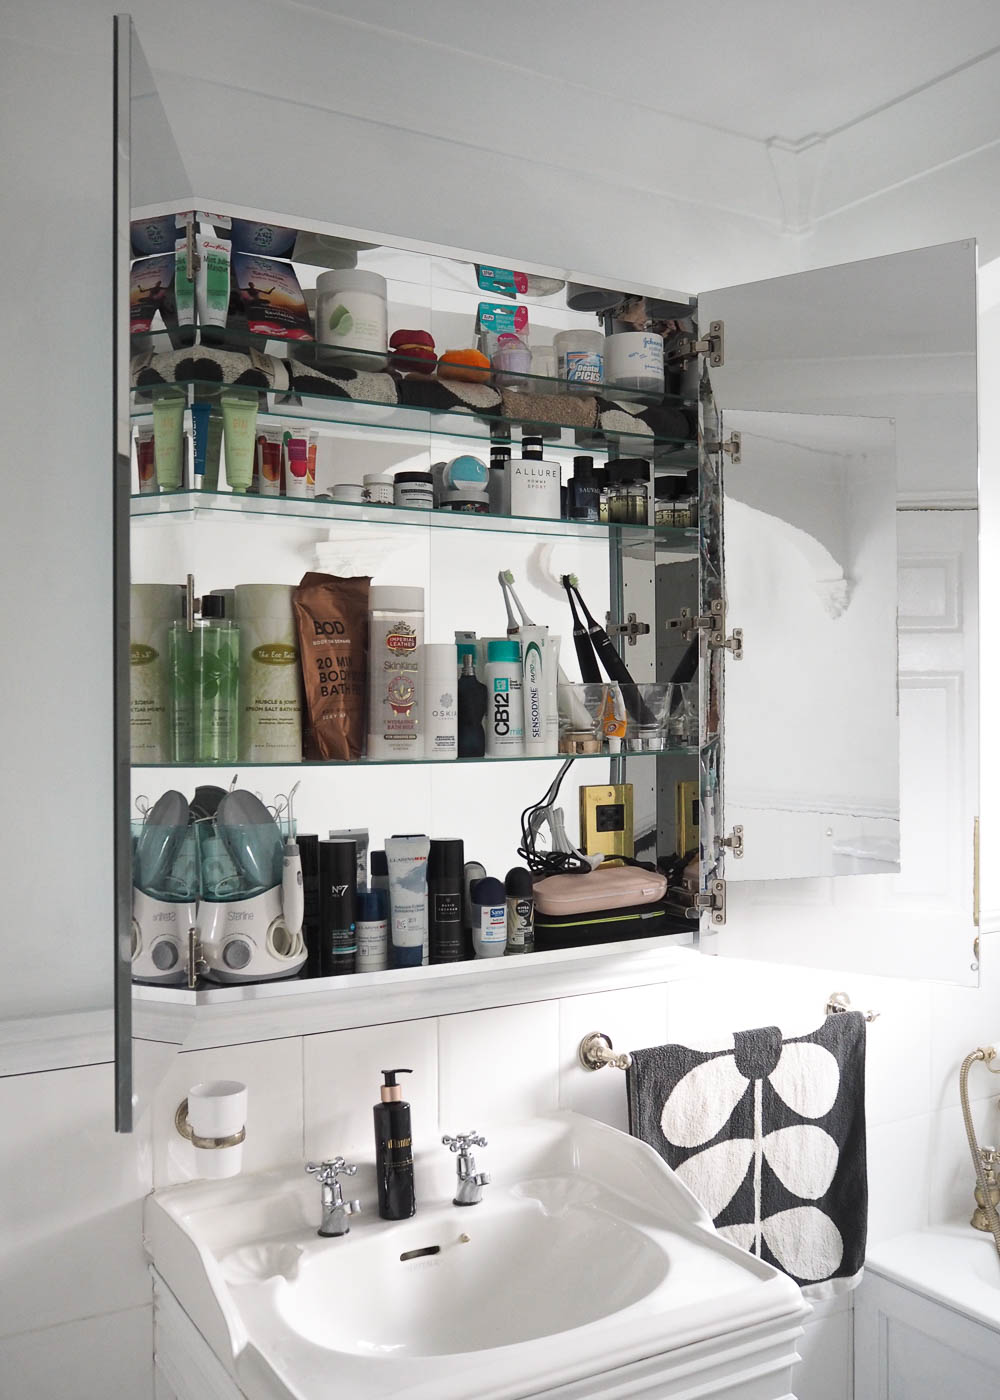 The IKEA Godmorgon Bathroom Mirror Cabinet